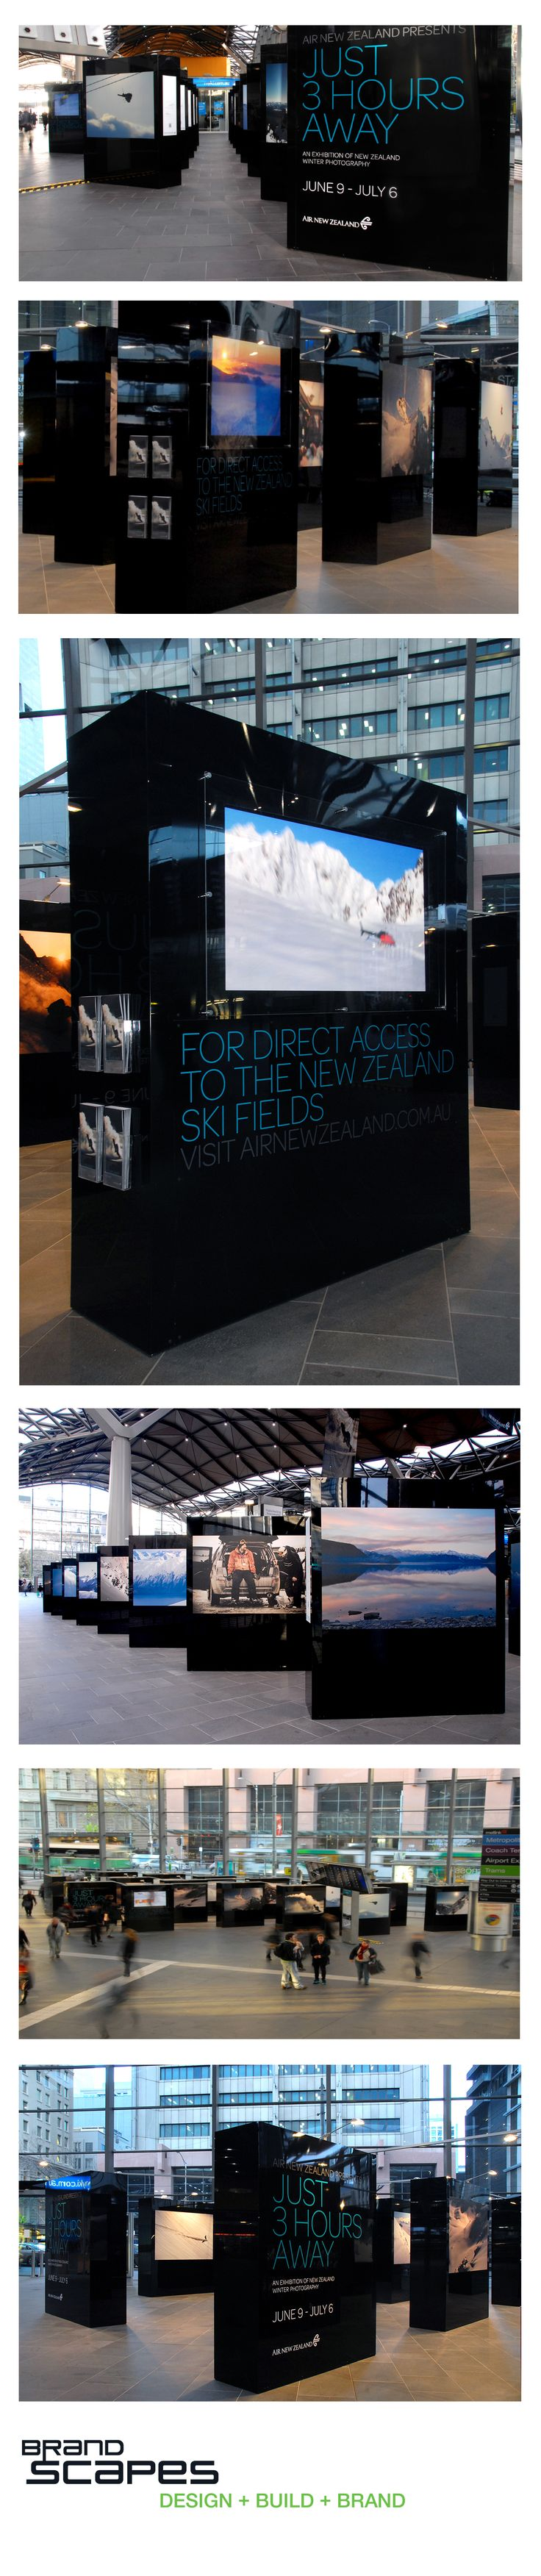 A display of New Zealand's winter photography was installed at Melbourne's Southern Cross Station.  The Exhibition engaged with commuters and reinforced the message that  New Zealand's winter wonderland is only 3 hours away. BrandScapes crafted glossy black pillars to display the large exhibition of quality prints and handled the complete production and implementation.